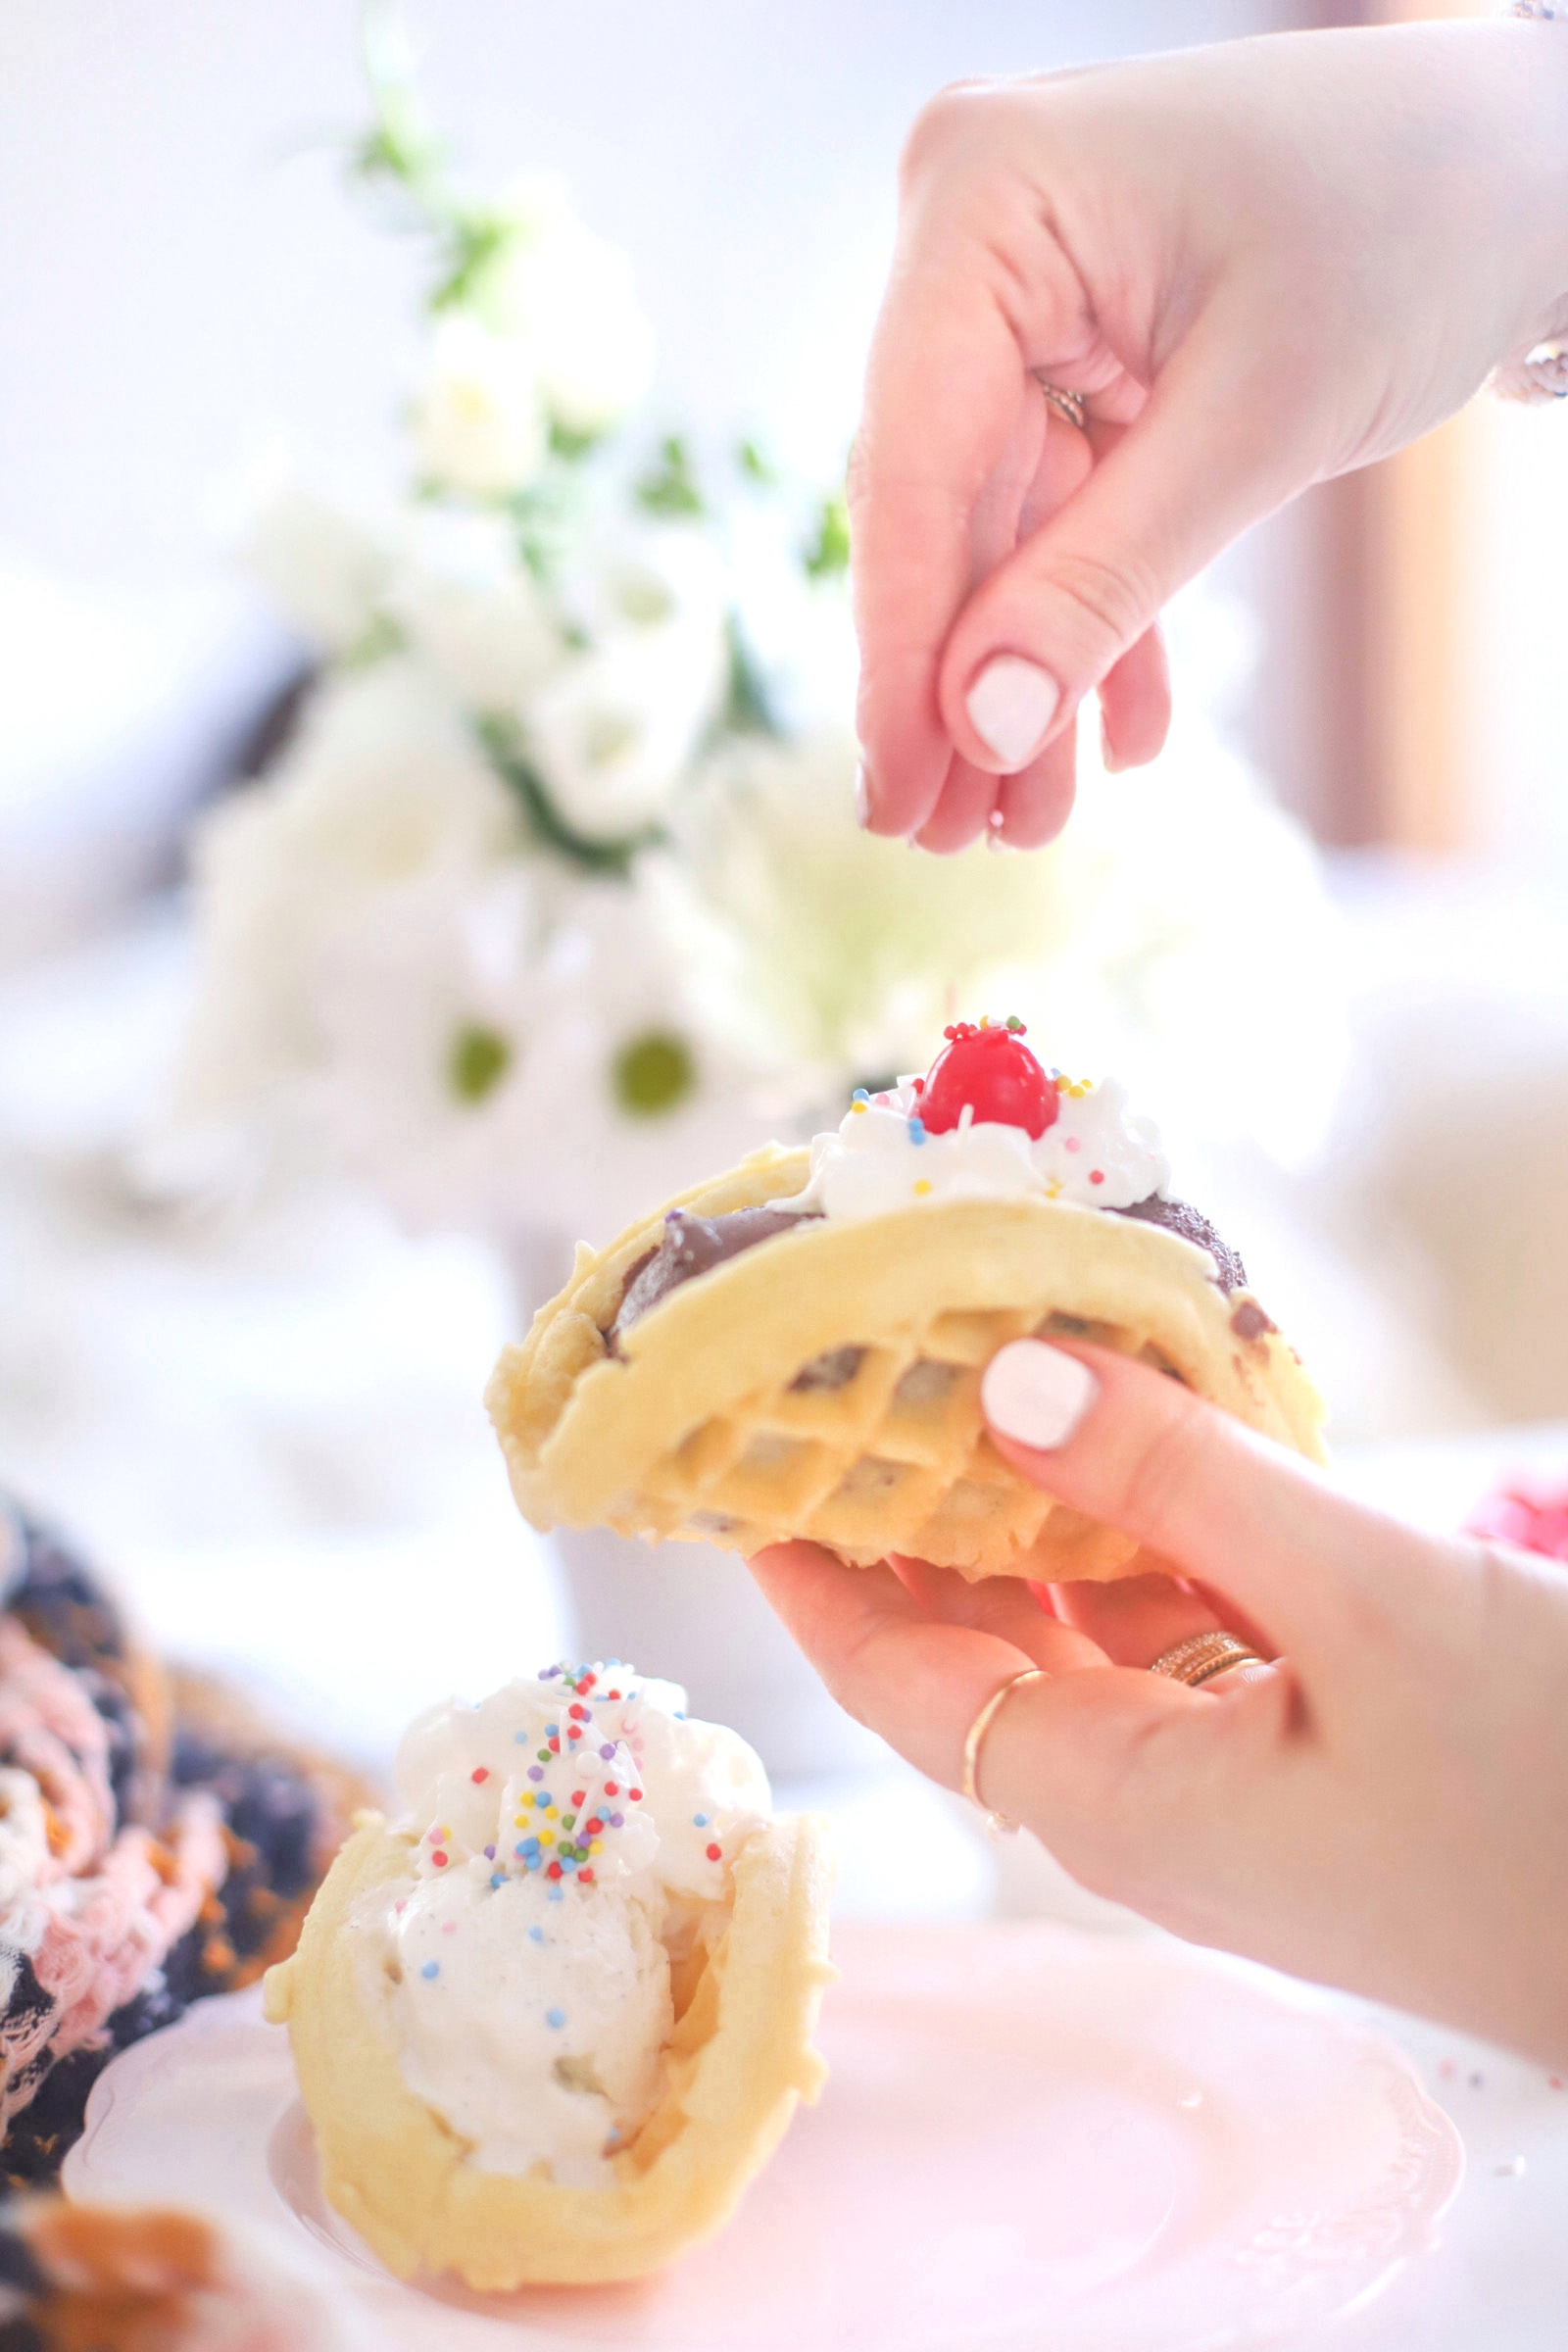 woman sprinkling dessert toppings on a pancake with ice cream